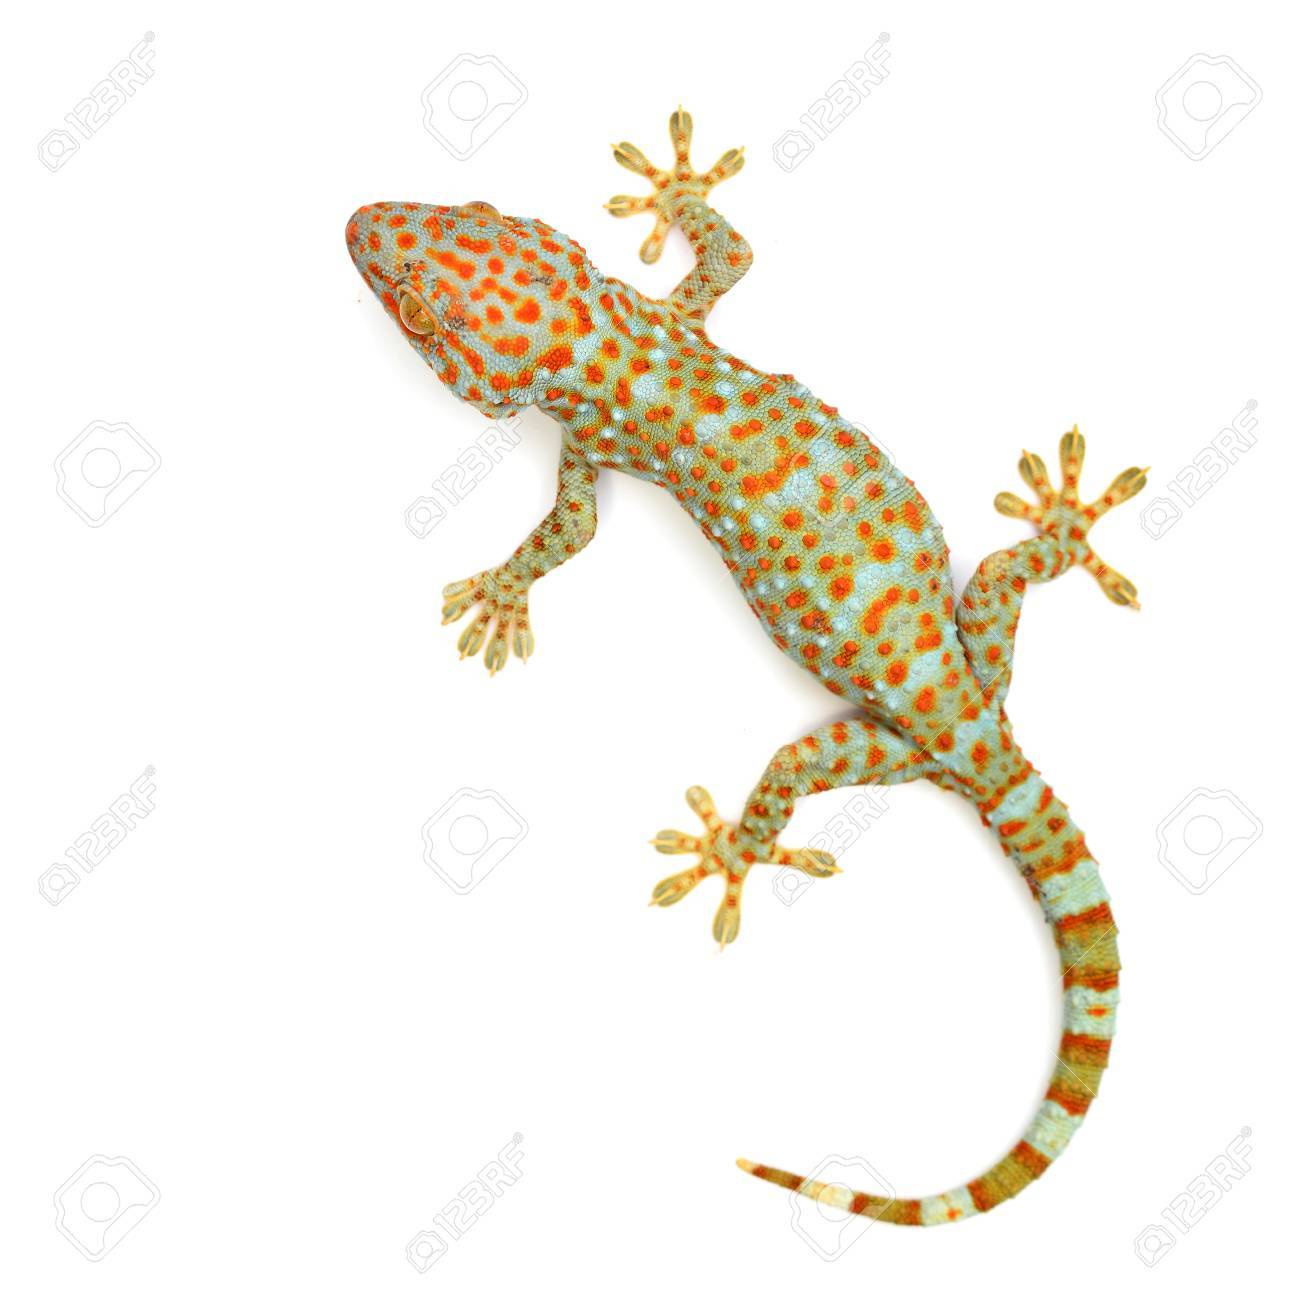 gecko isolated on white background - 32926570